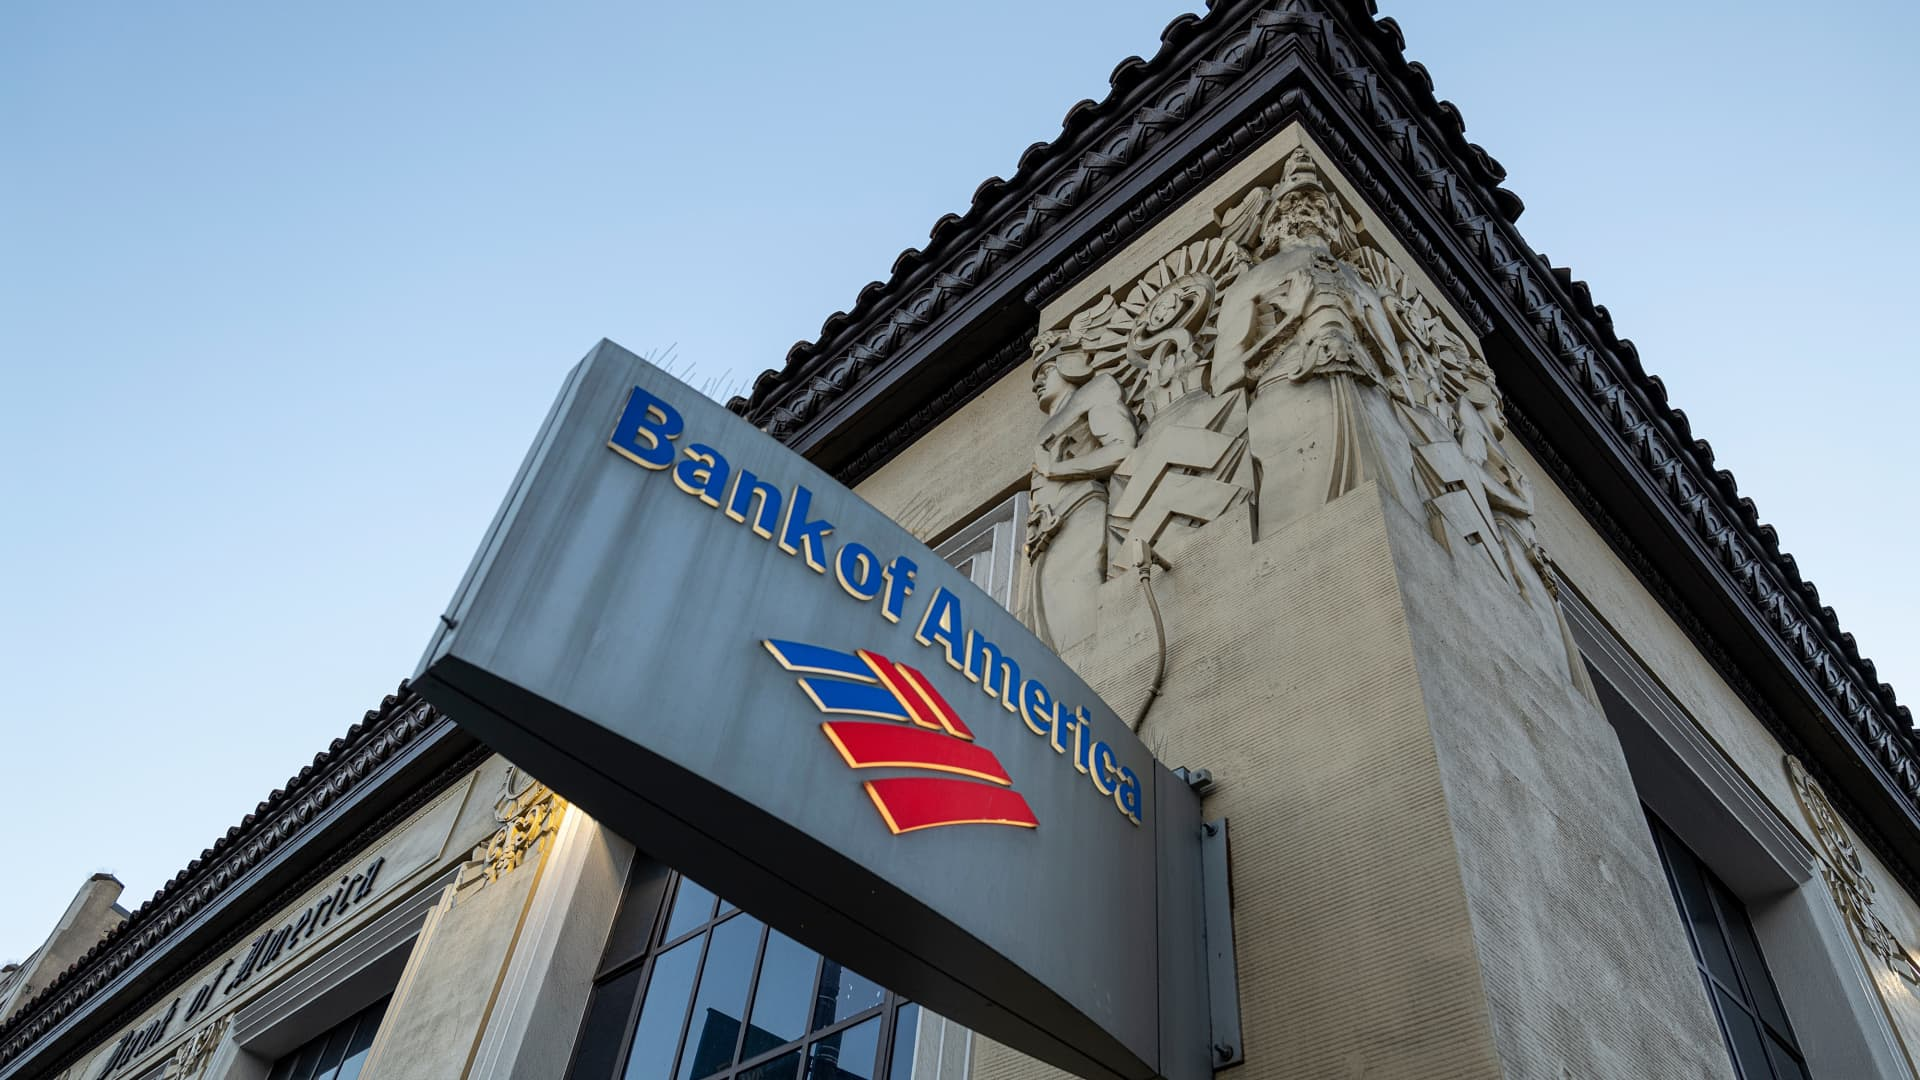 Signage outside a Bank of America branch in San Francisco, California, U.S., on Thursday, Jan. 14, 2021.